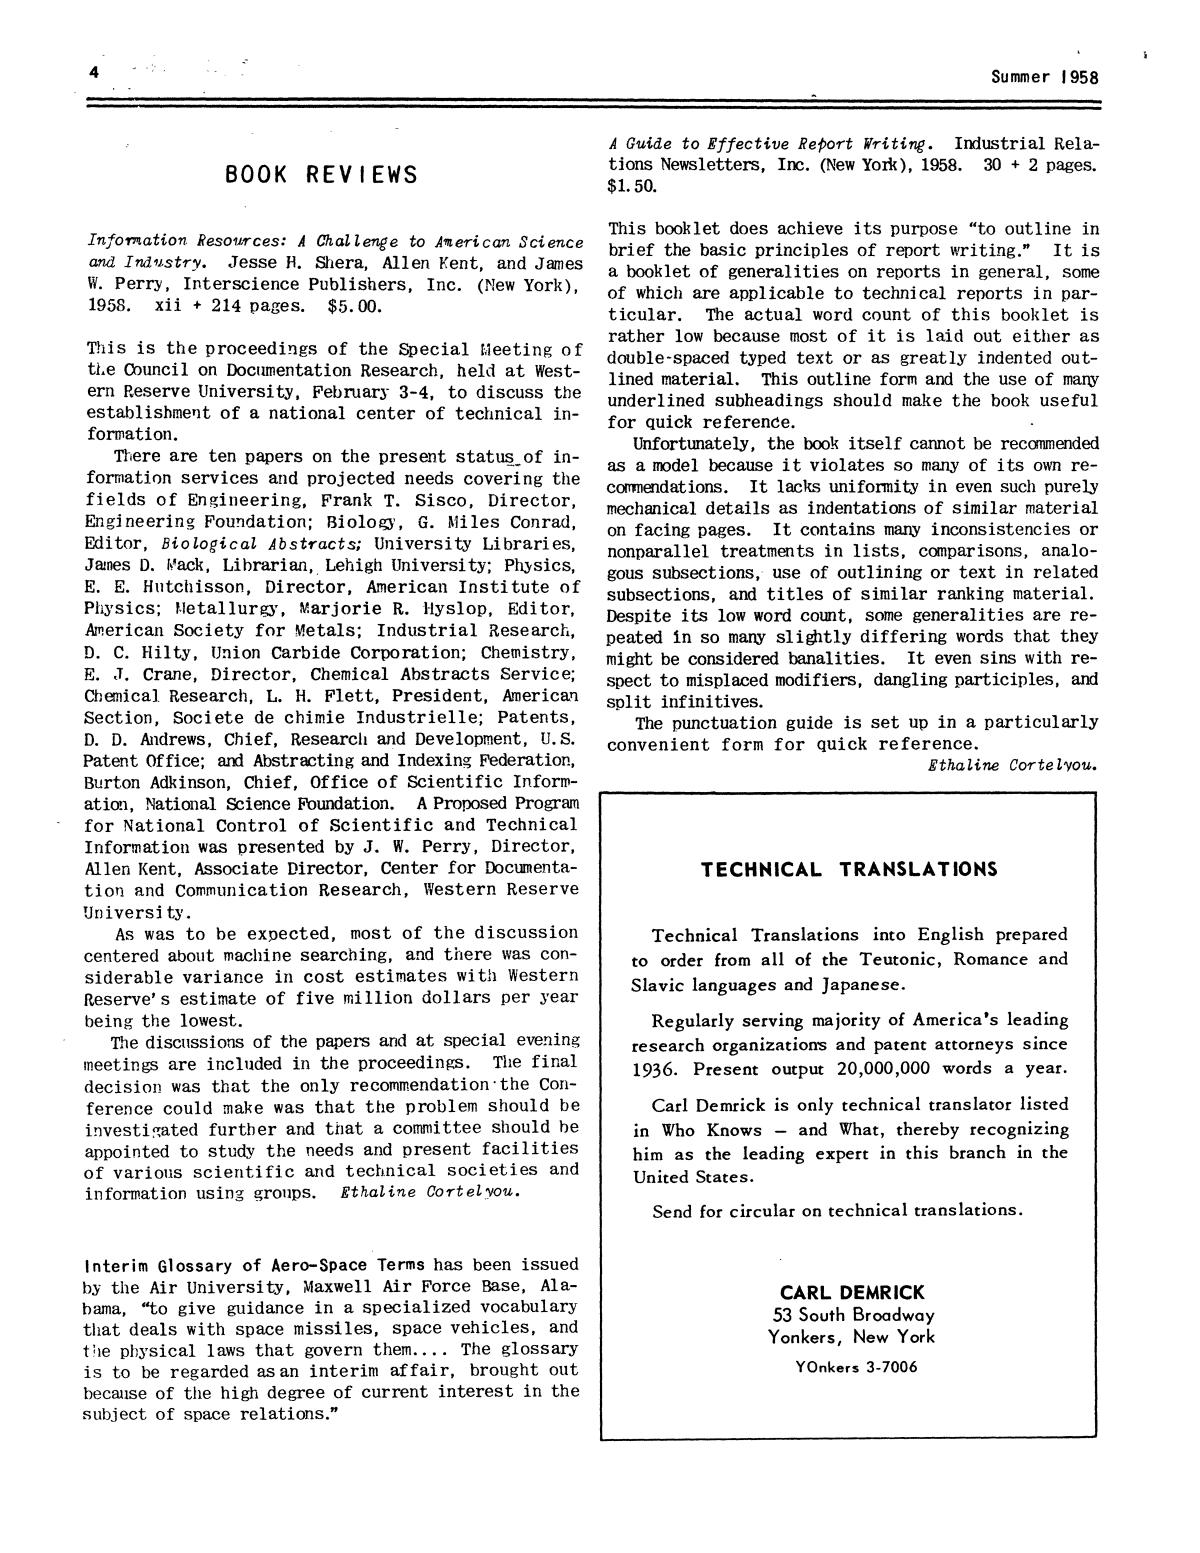 Chemical Literature, Volume 10, Number 2 (Sect. I), Summer 1958                                                                                                      4